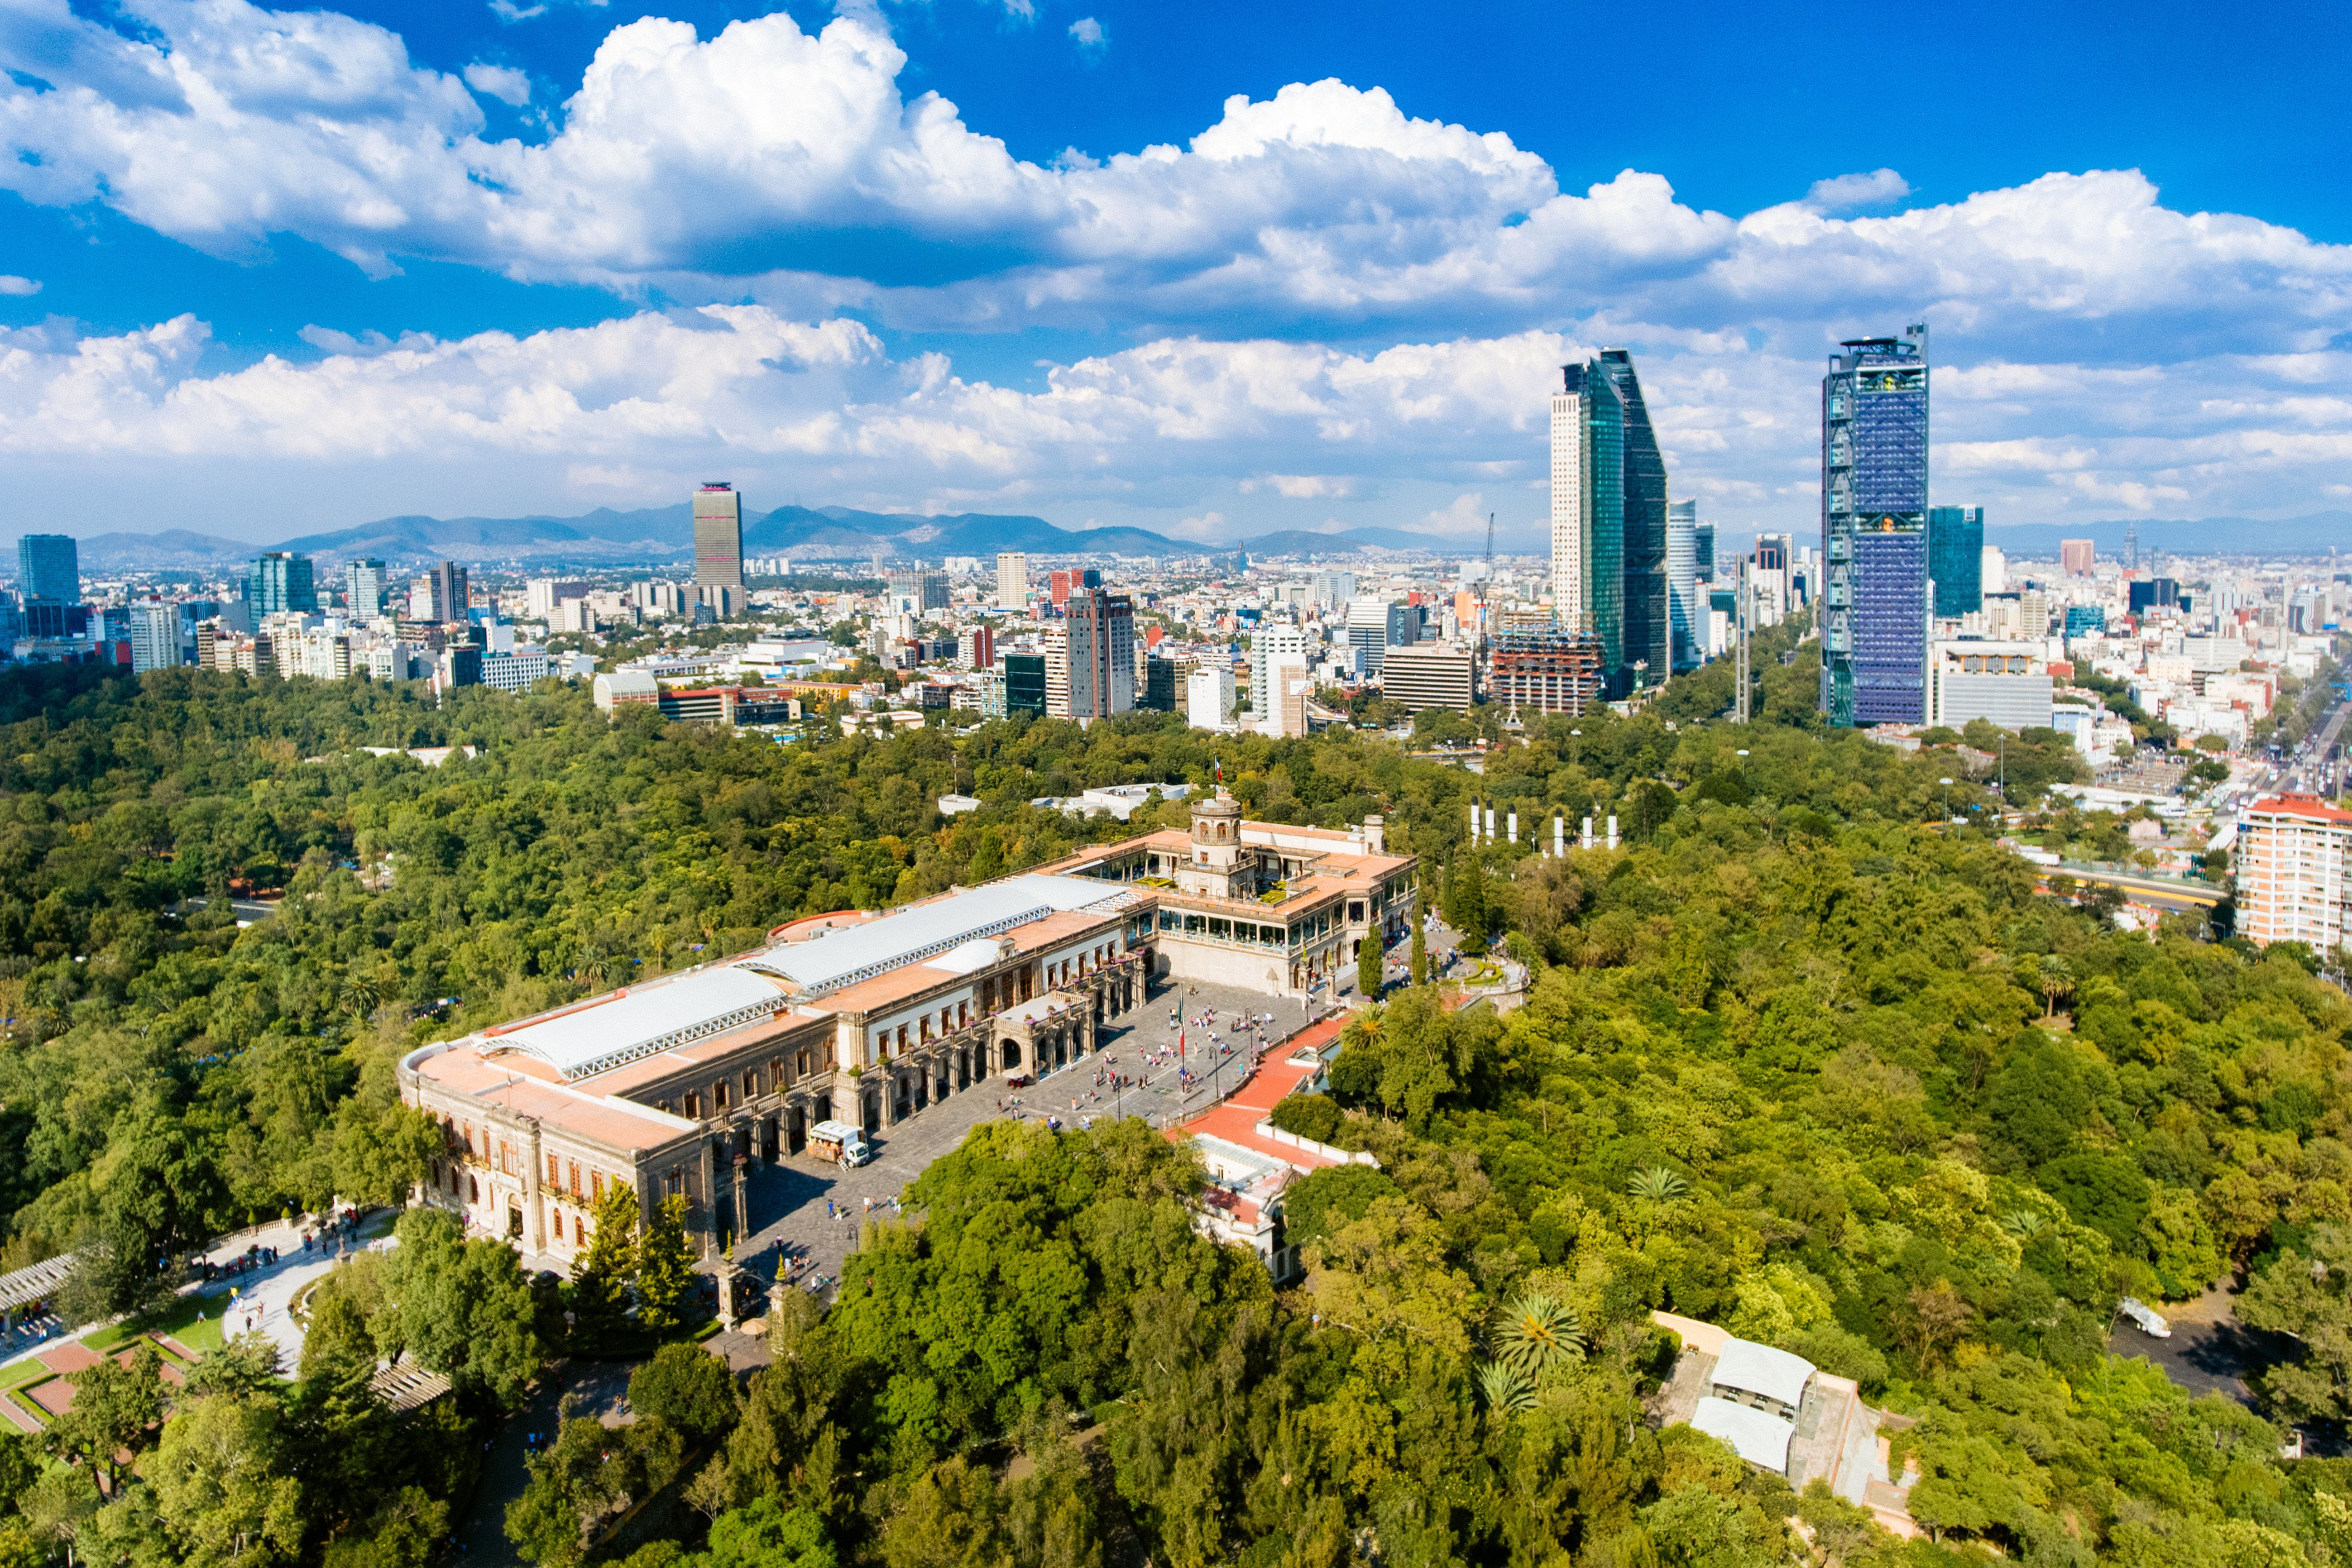 Chapultepec Castle with Mexico City's skyline in the